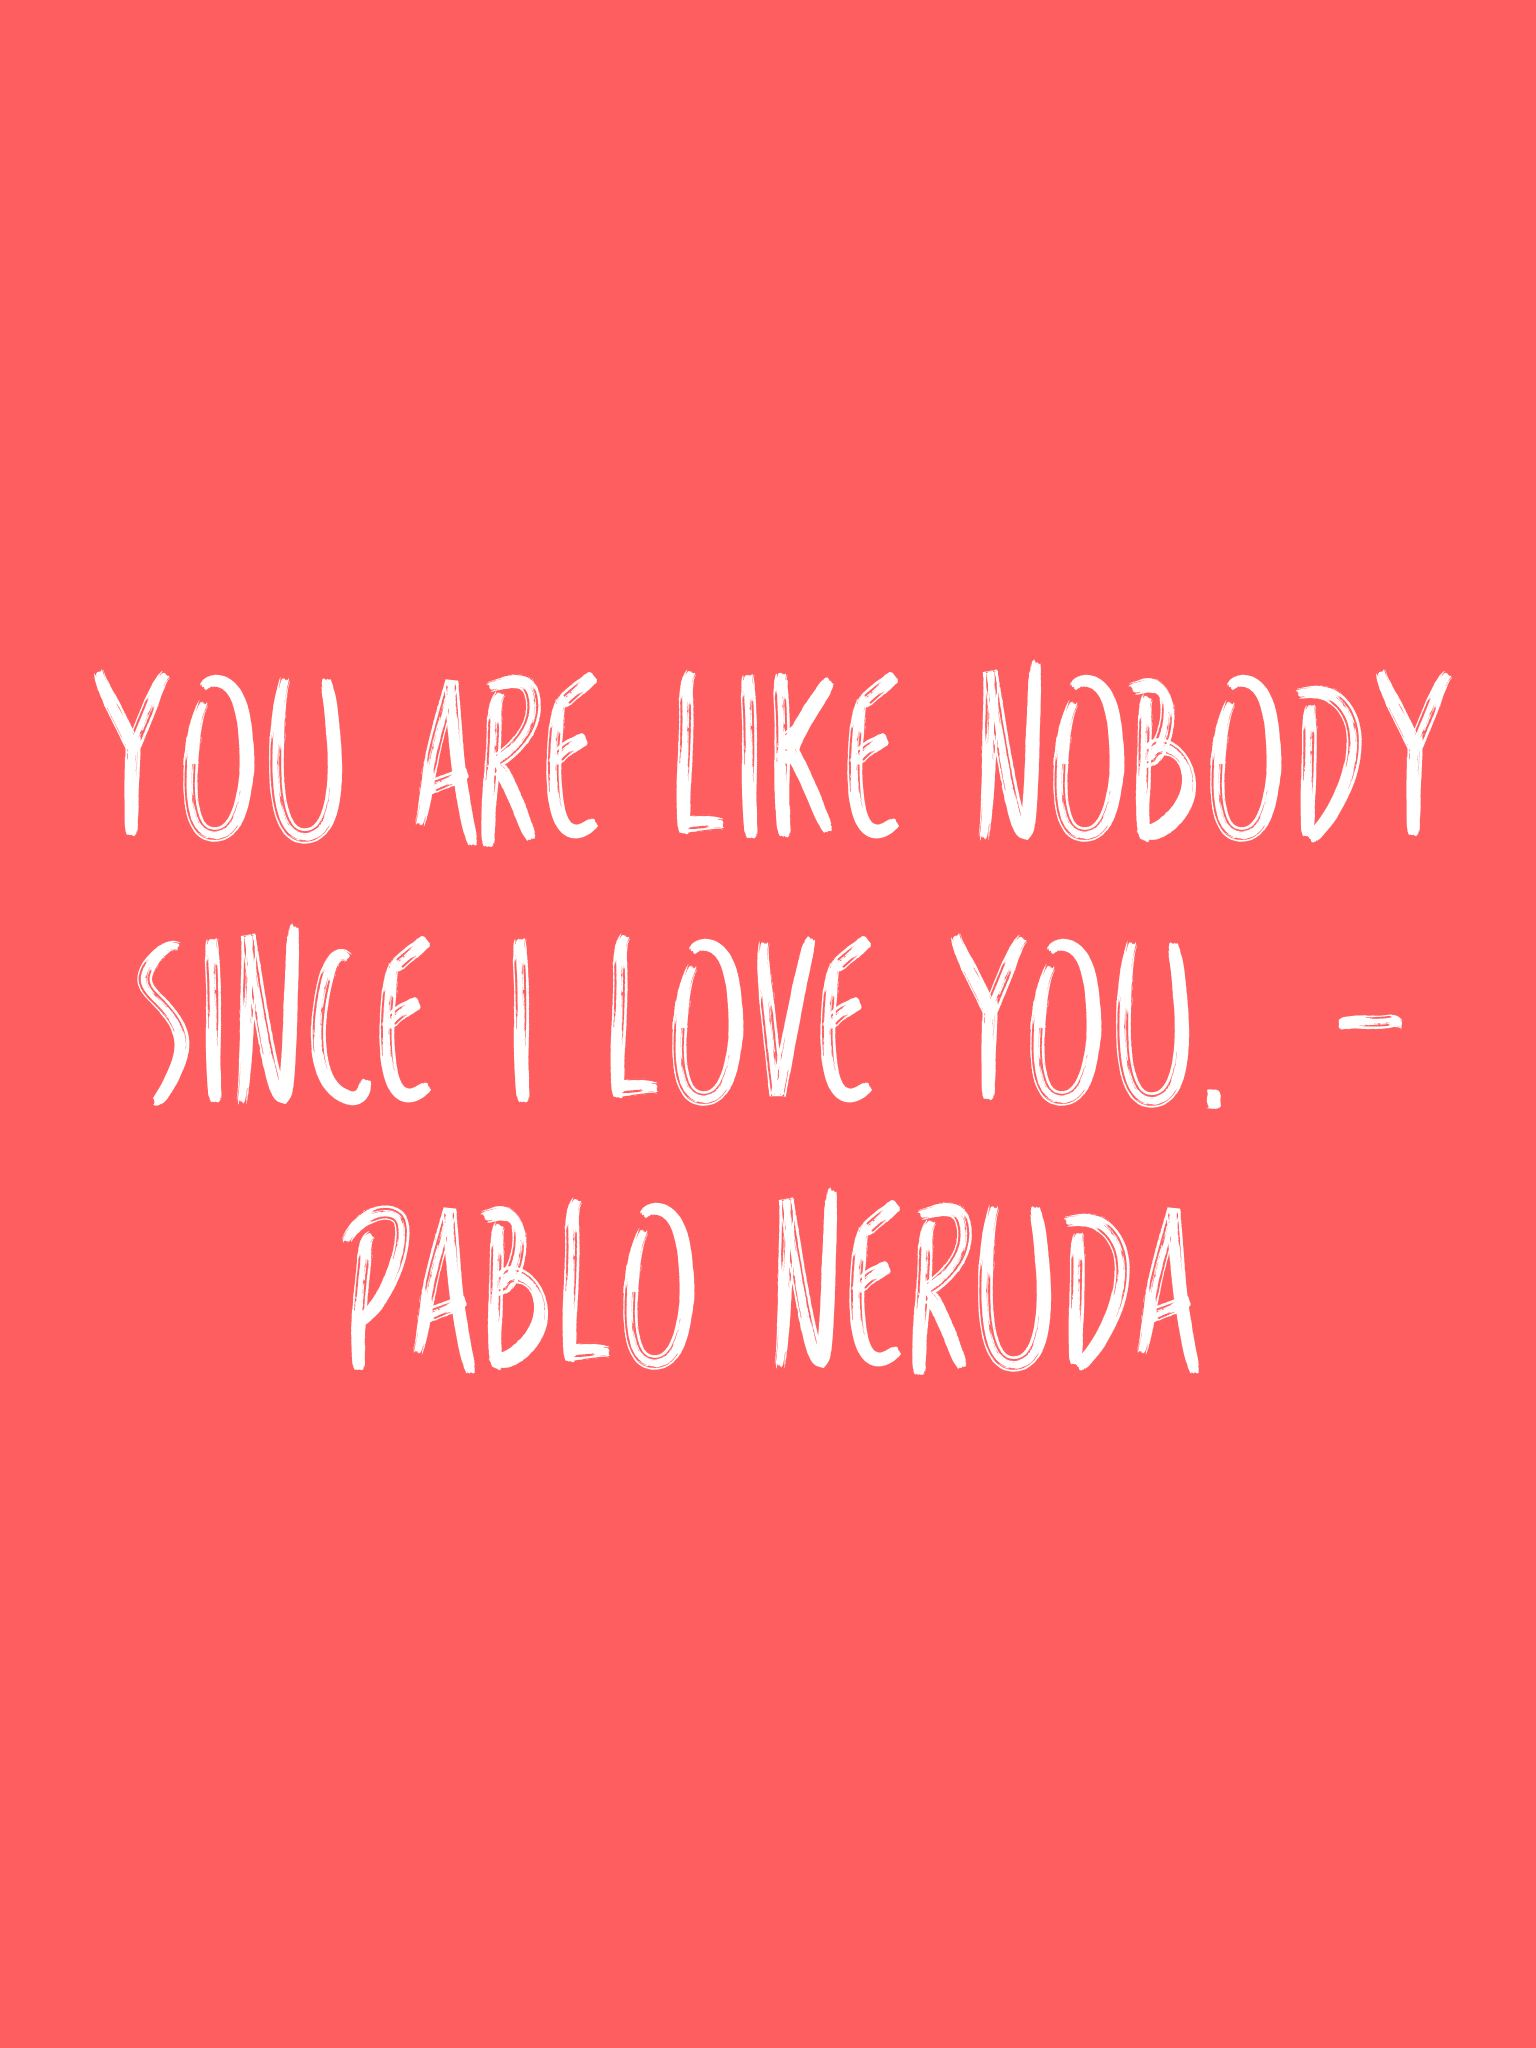 Romantic I Love You Quotes You Are Like Nobody Since I Love You Pablo Neruda Quotes Love